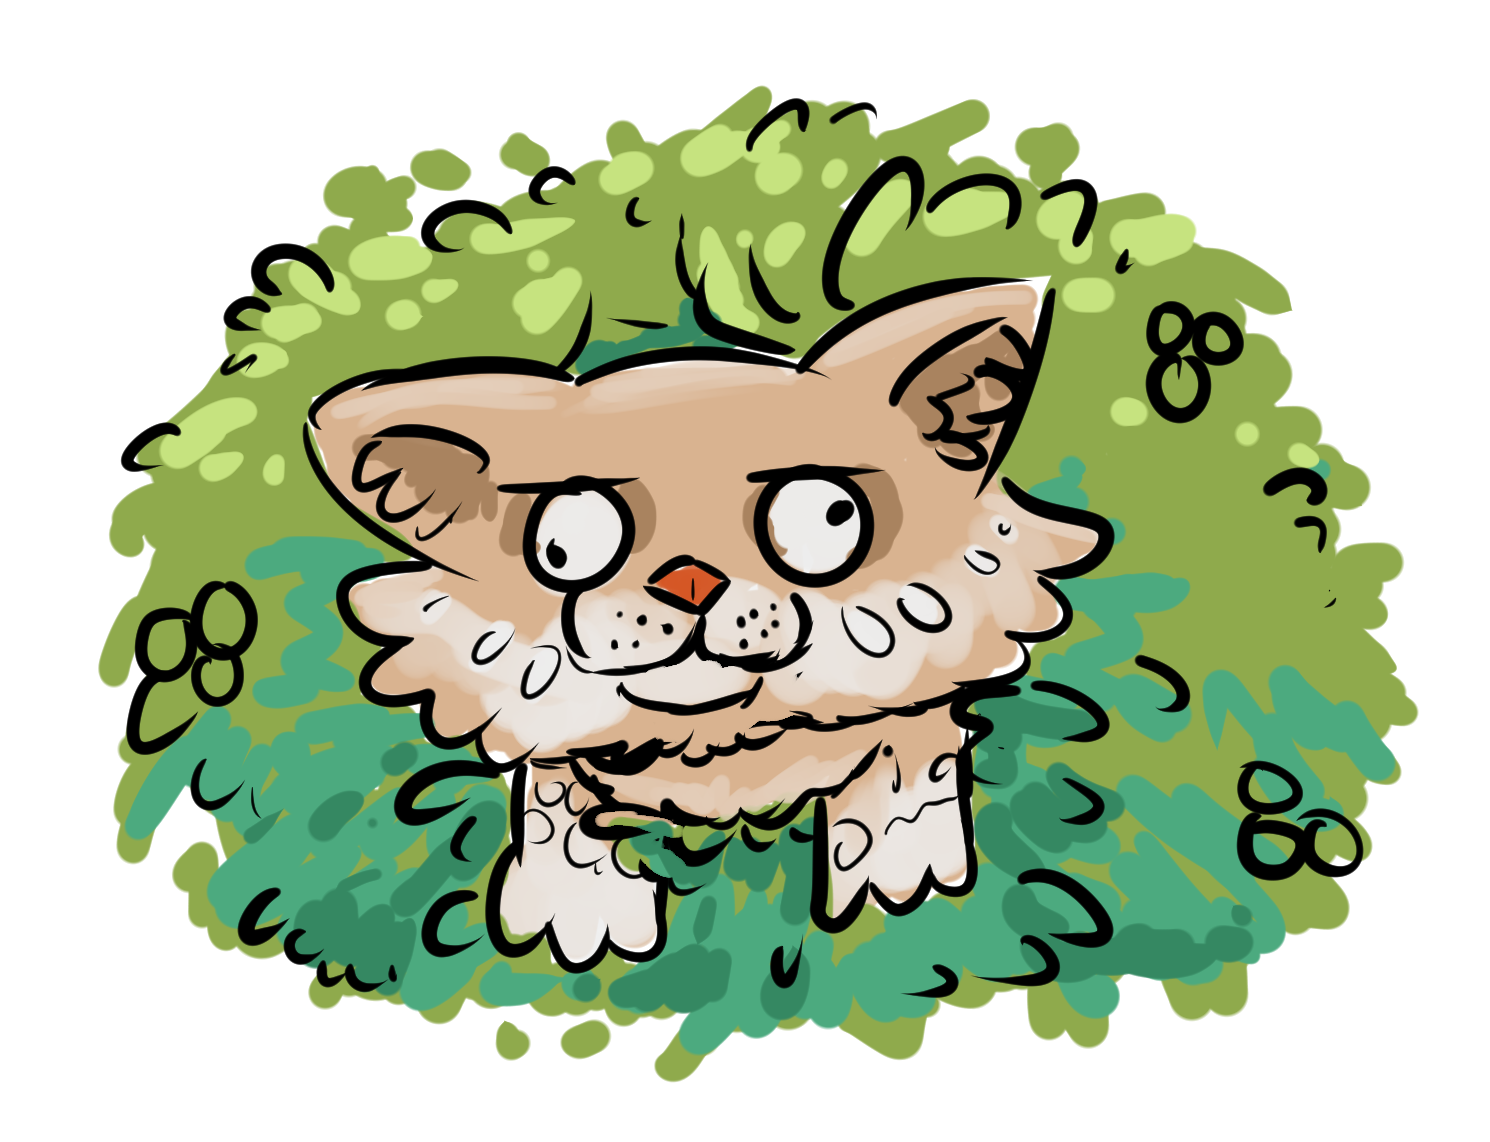 Ur weekly drawing prompt. See clipart soft sound